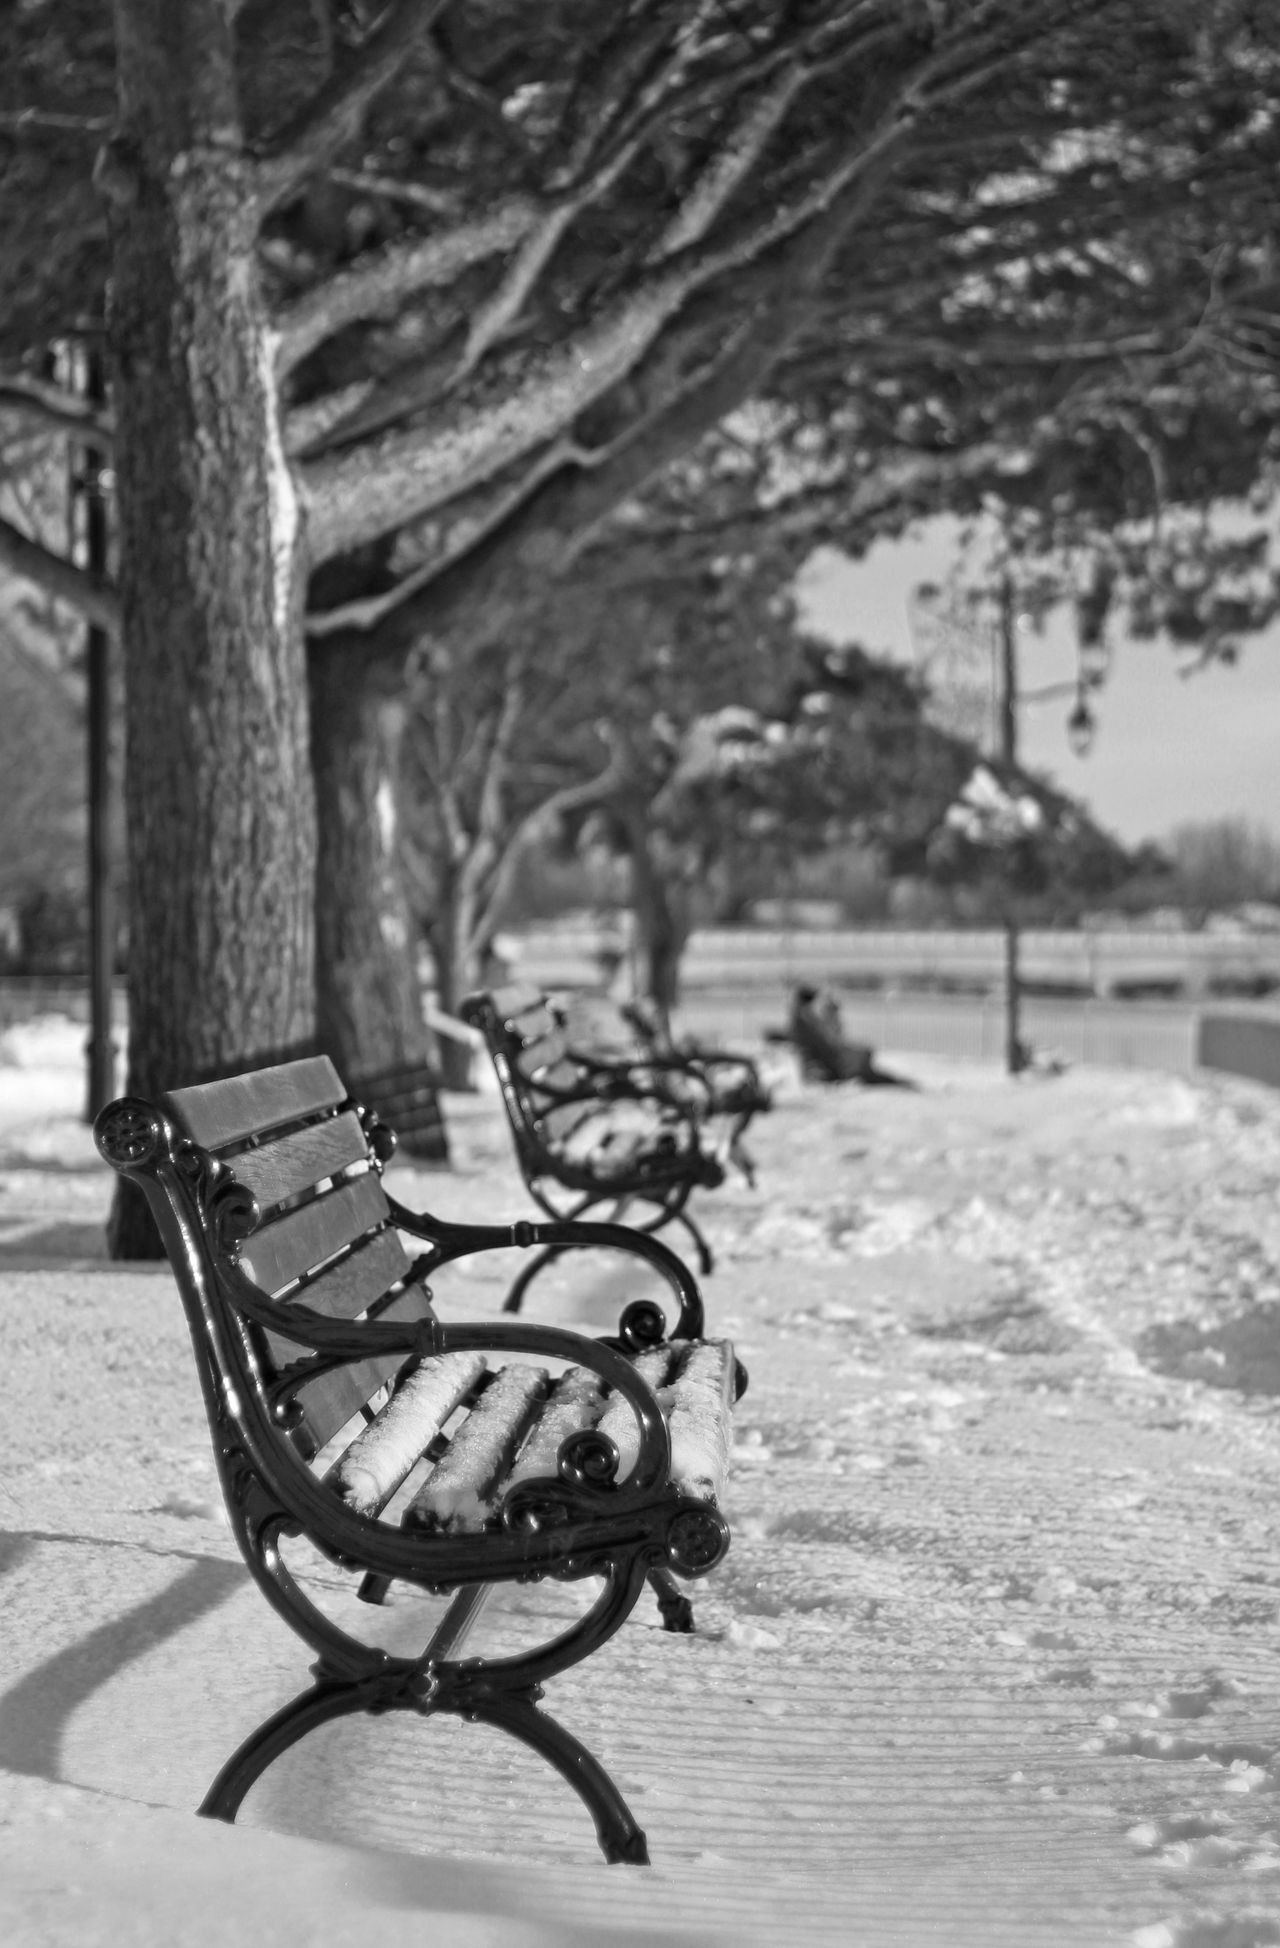 Bench Chair Close-up Cold Wheather Day Empty Nature No People Outdoors Park Snow Table Tree Winter